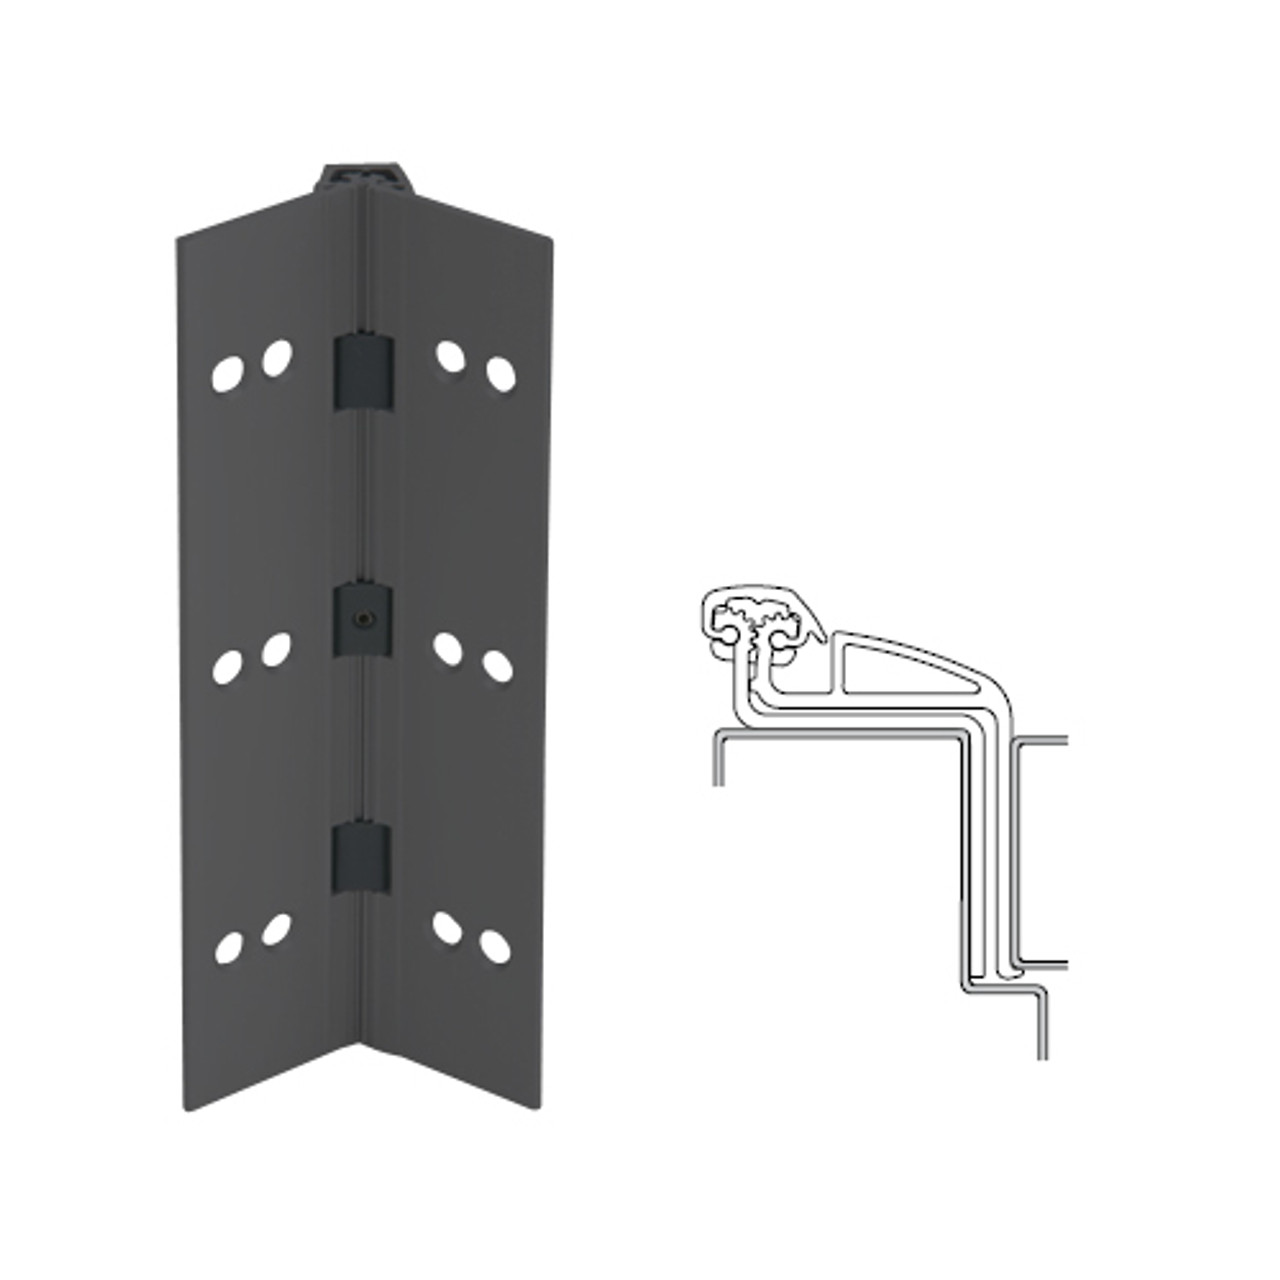 041XY-315AN-83-TEKWD IVES Full Mortise Continuous Geared Hinges with Wood Screws in Anodized Black